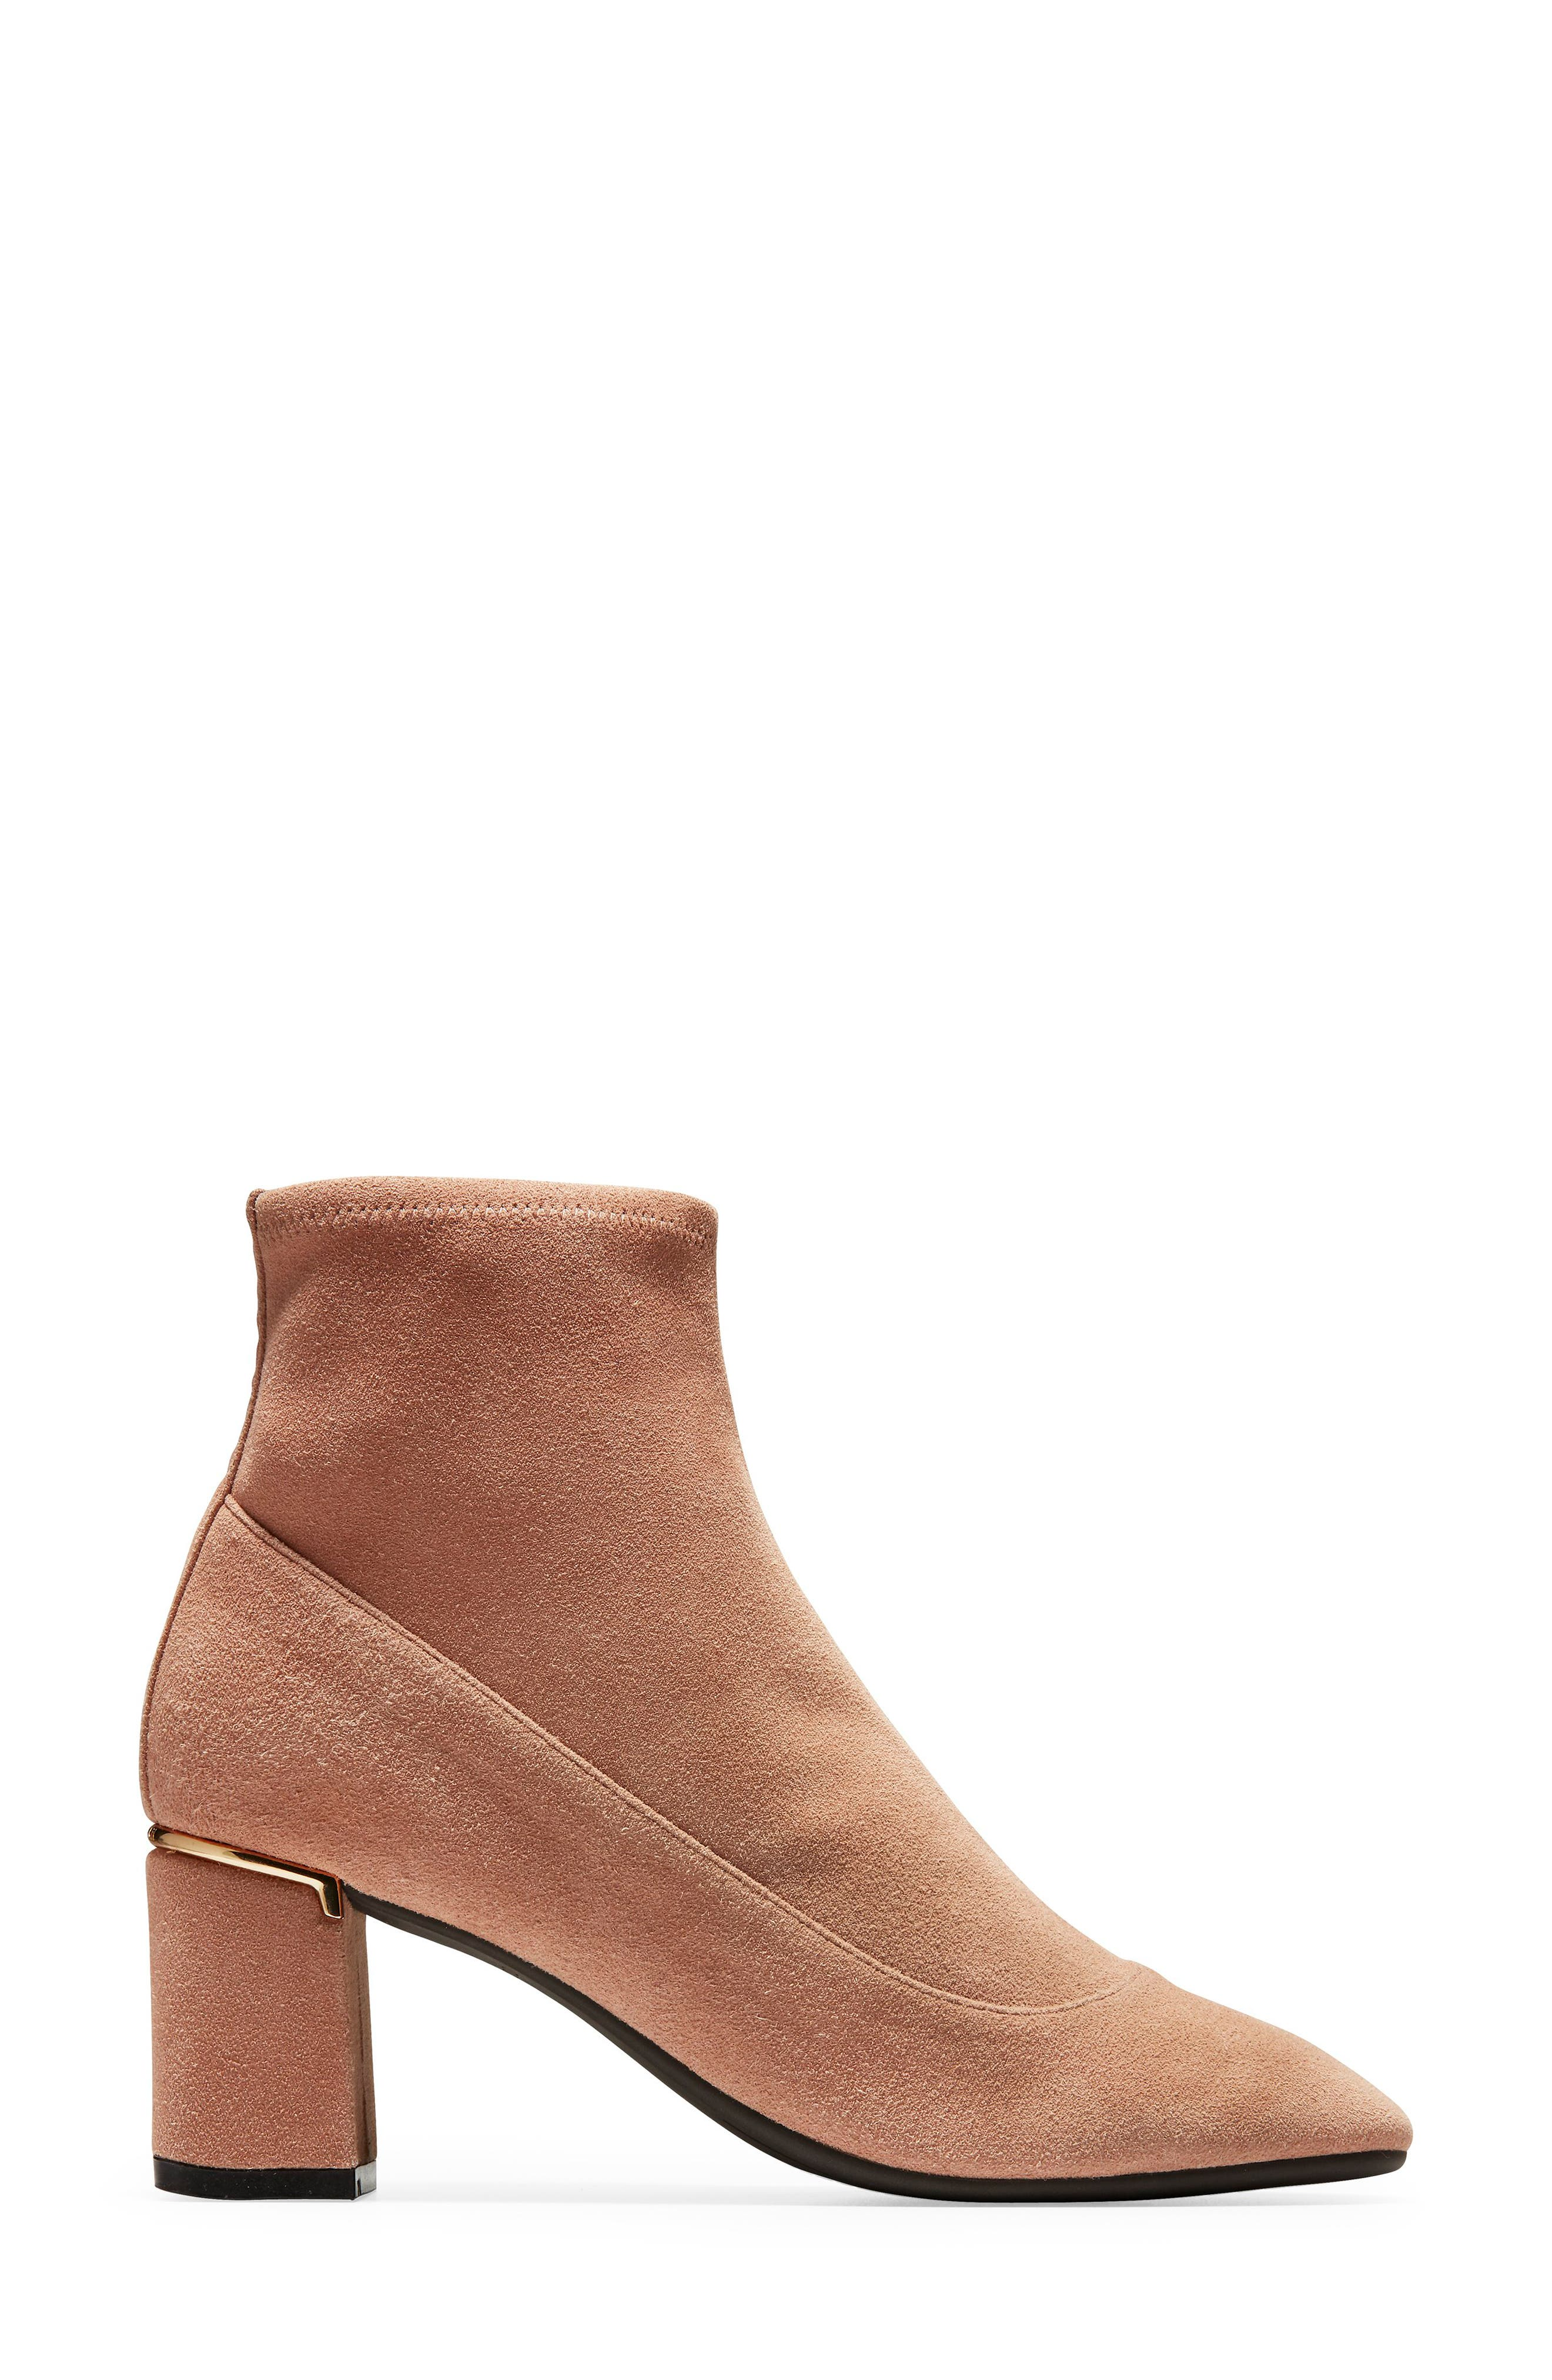 COLE HAAN, Laree Stretch Bootie, Alternate thumbnail 3, color, 200